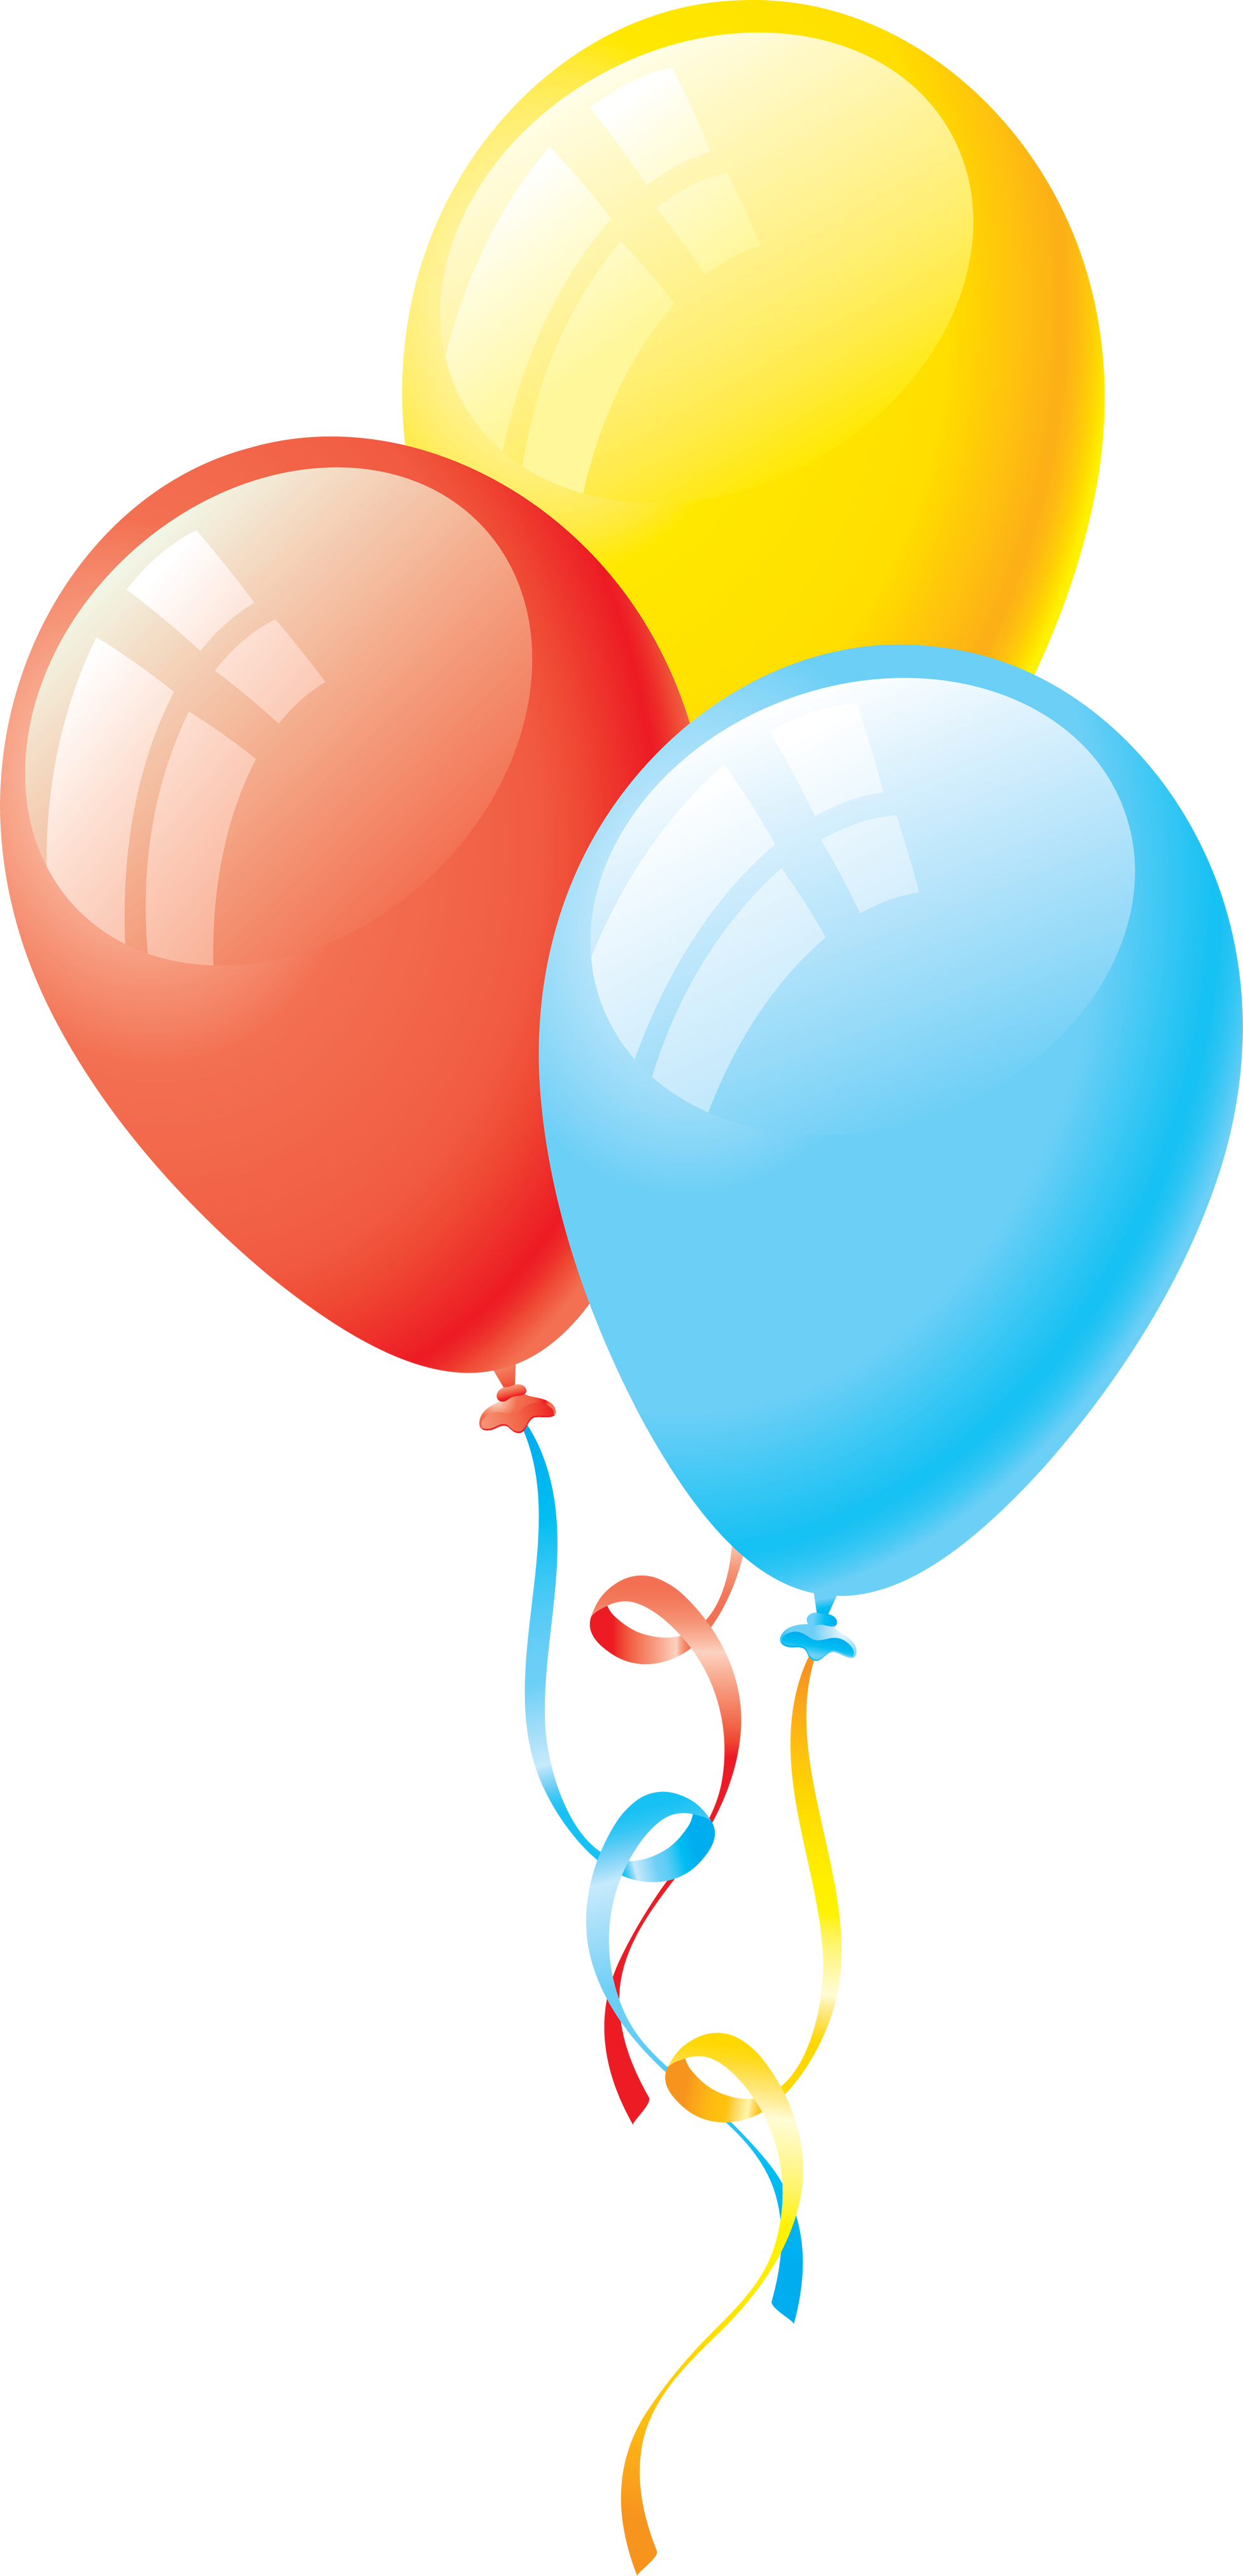 Balloons png transparent background. Balloon images free picture